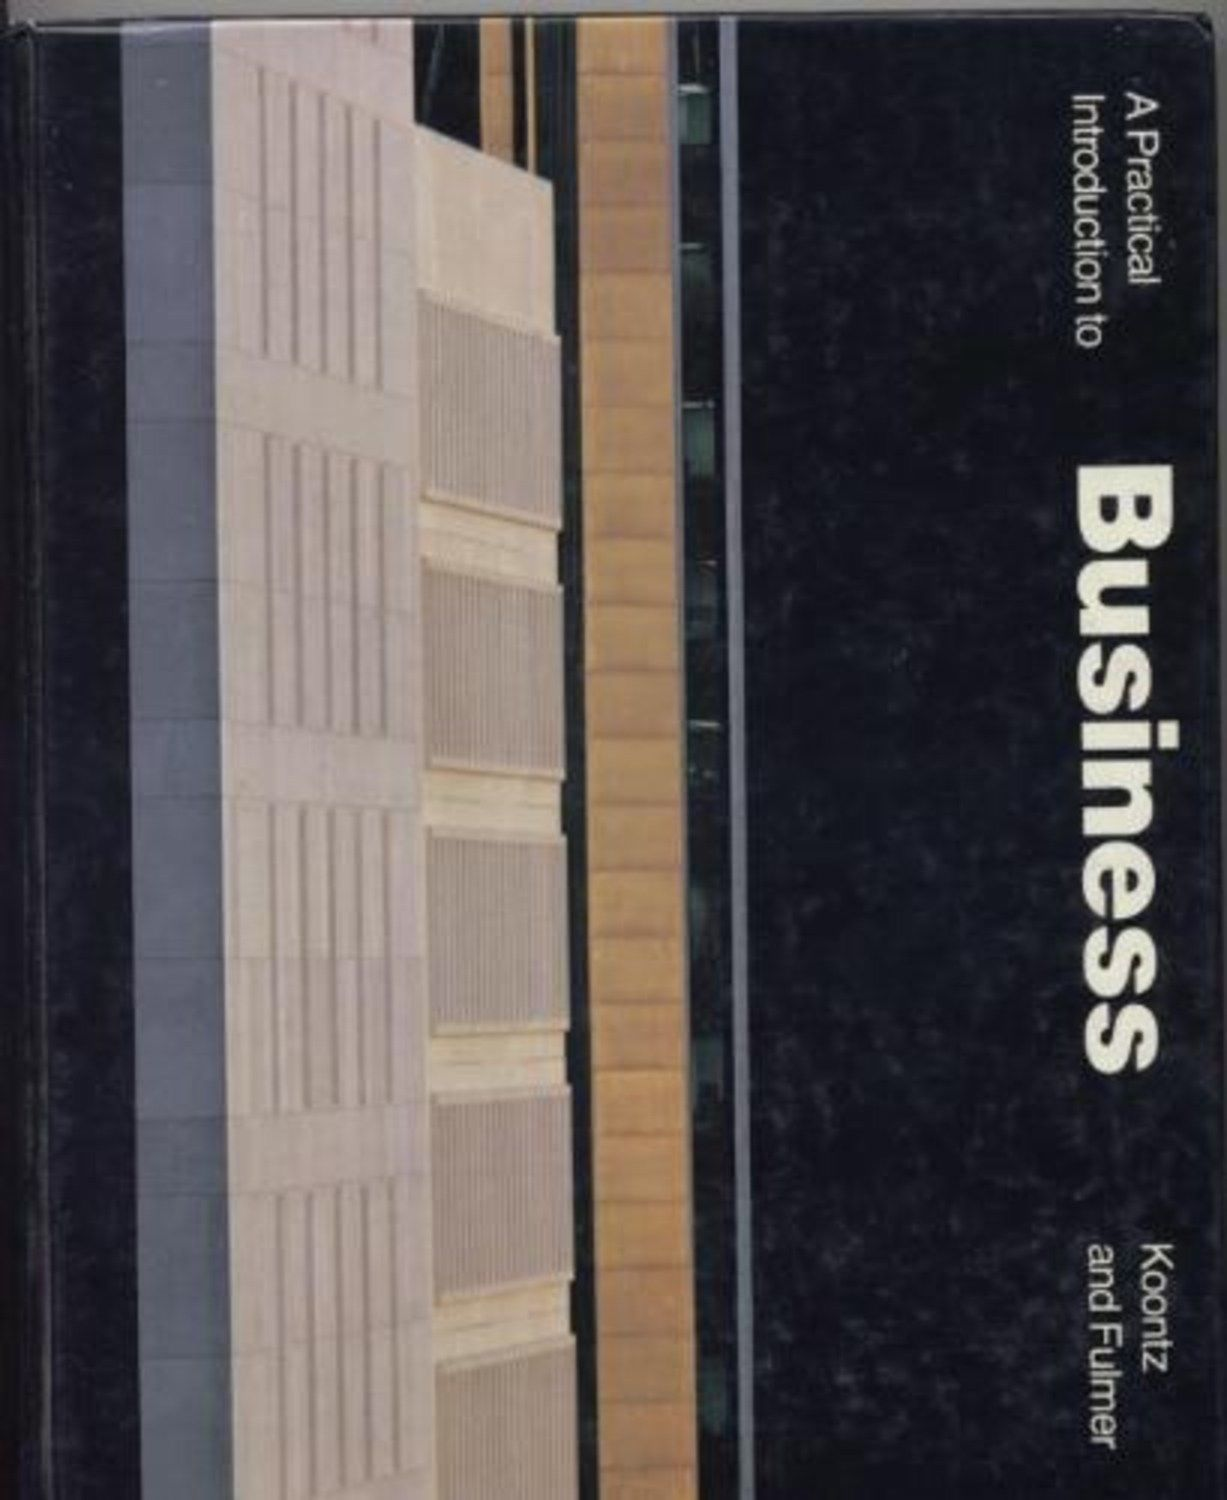 business a practical introduction Buy spreadsheet modeling & decision analysis: a practical introduction to business analytics 8th edition (9781305947412) by cliff ragsdale for up to 90% off at textbookscom.